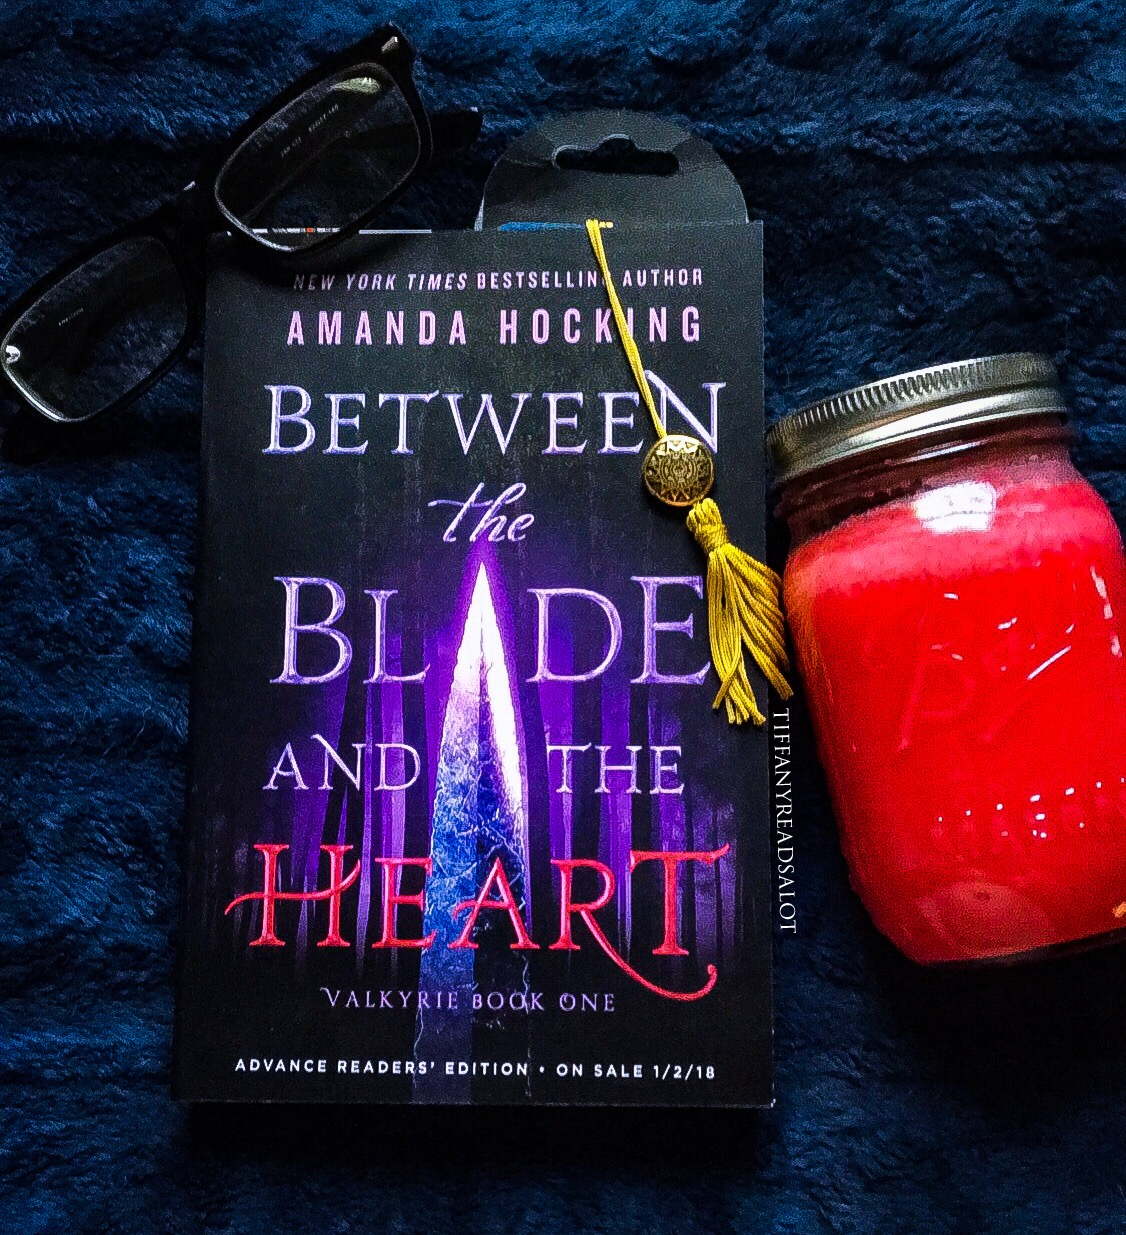 Review: Between the Blade and the Heart (Valkyrie #1) by Amanda Hocking